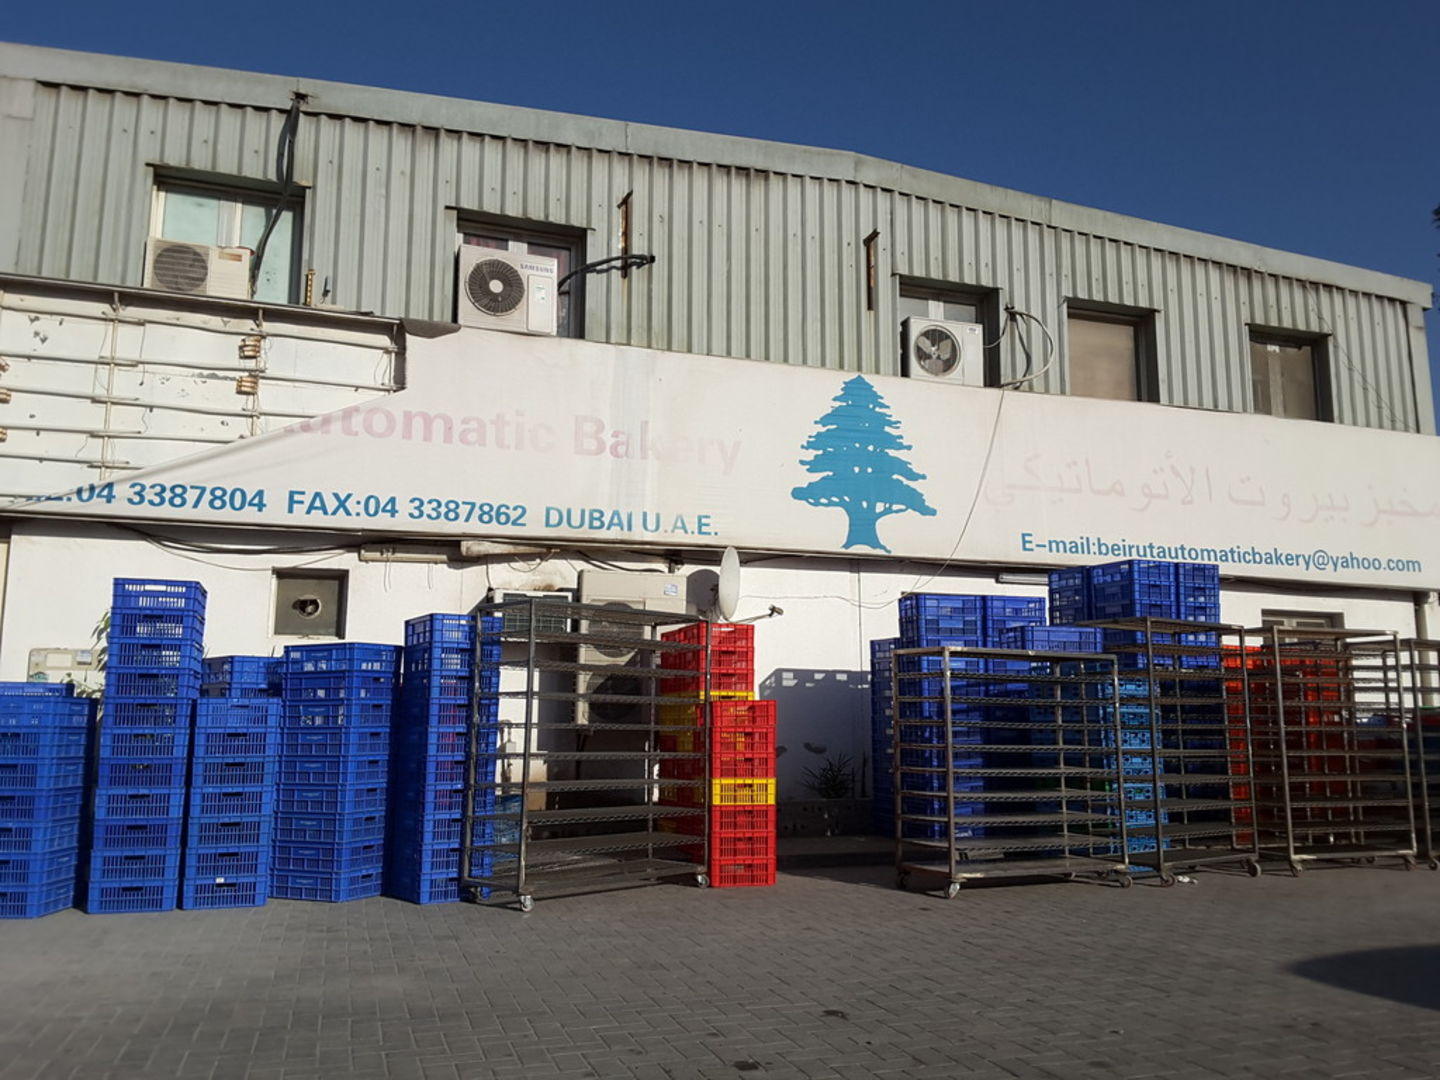 Al Arz Automatic Bakerie, (Food Stuff Trading) in Al Quoz Industrial